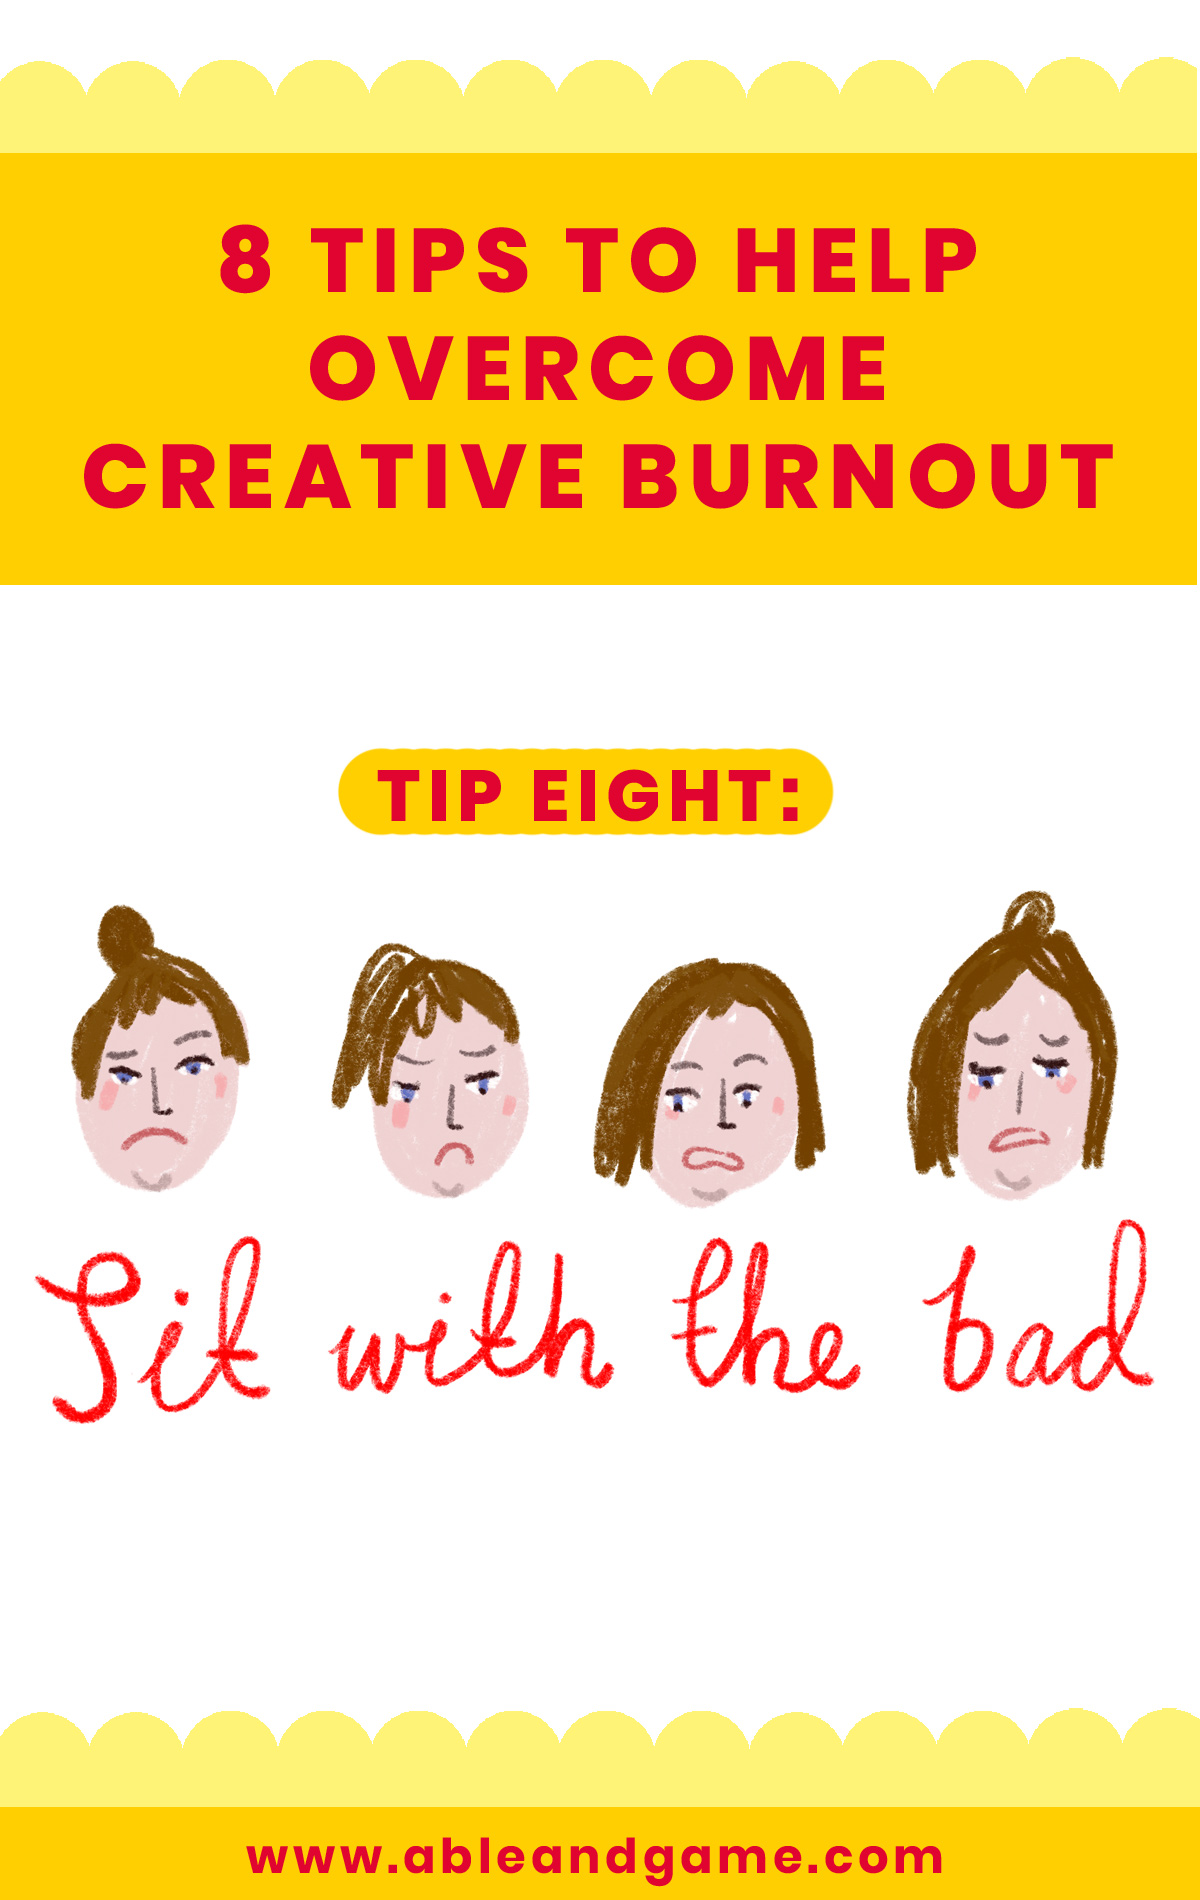 How To Get Out Of Creative Burnout After 2020